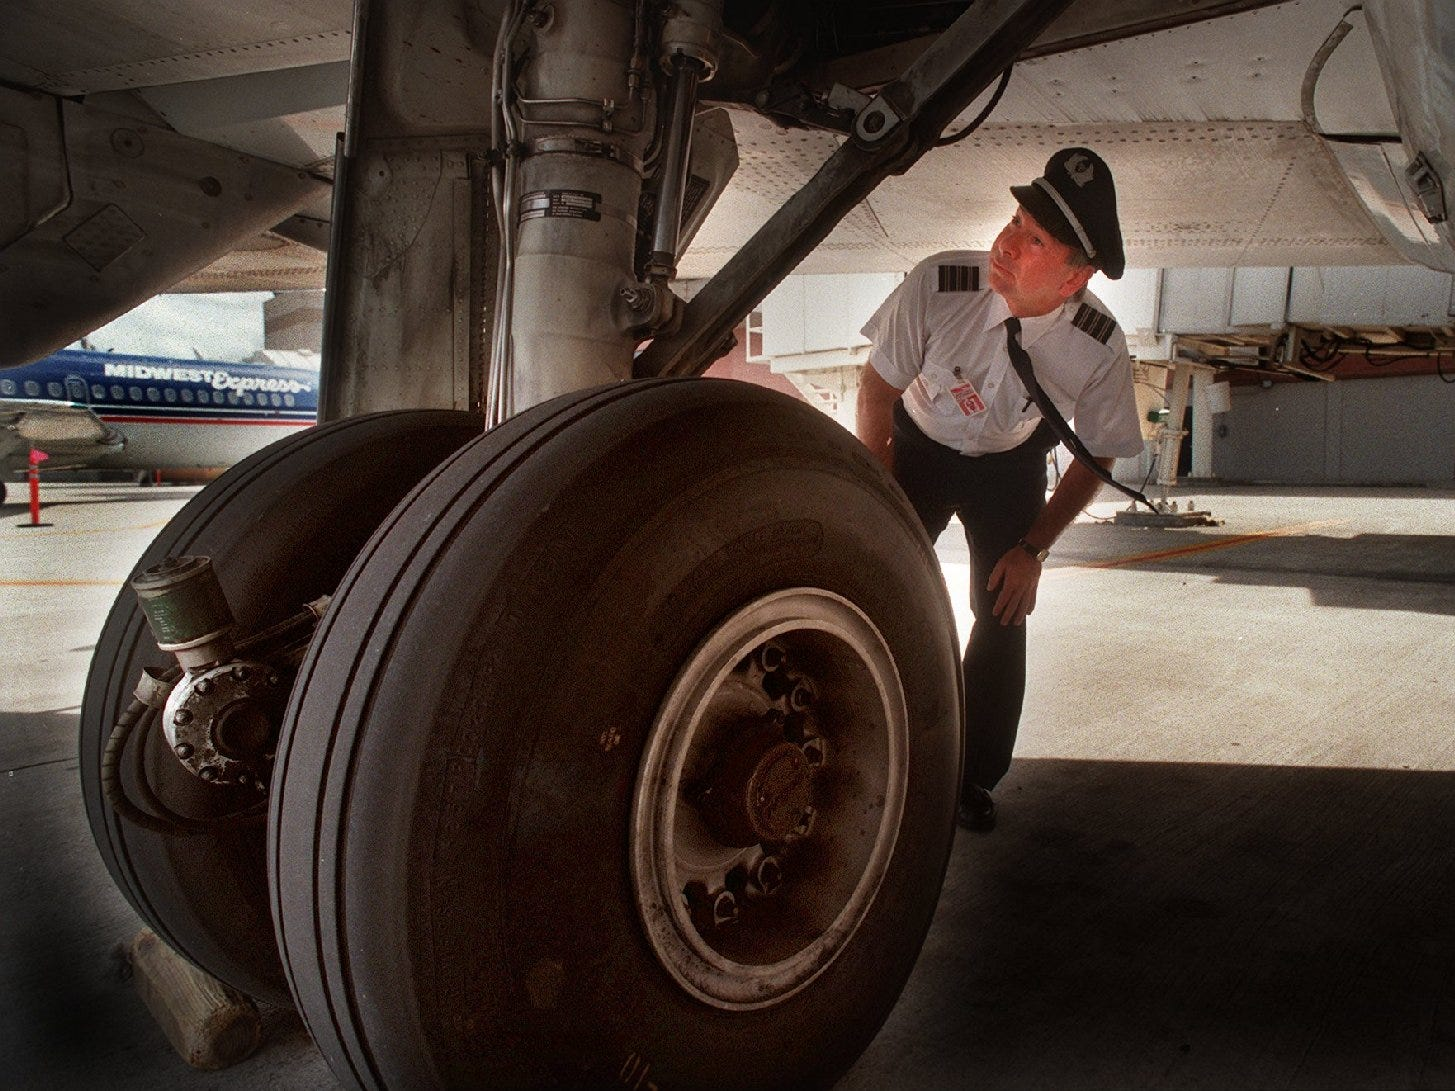 Midwest Expres Airlines pilot Michael R. Jilot inspects his aircraft prior to departing for Cleveland.